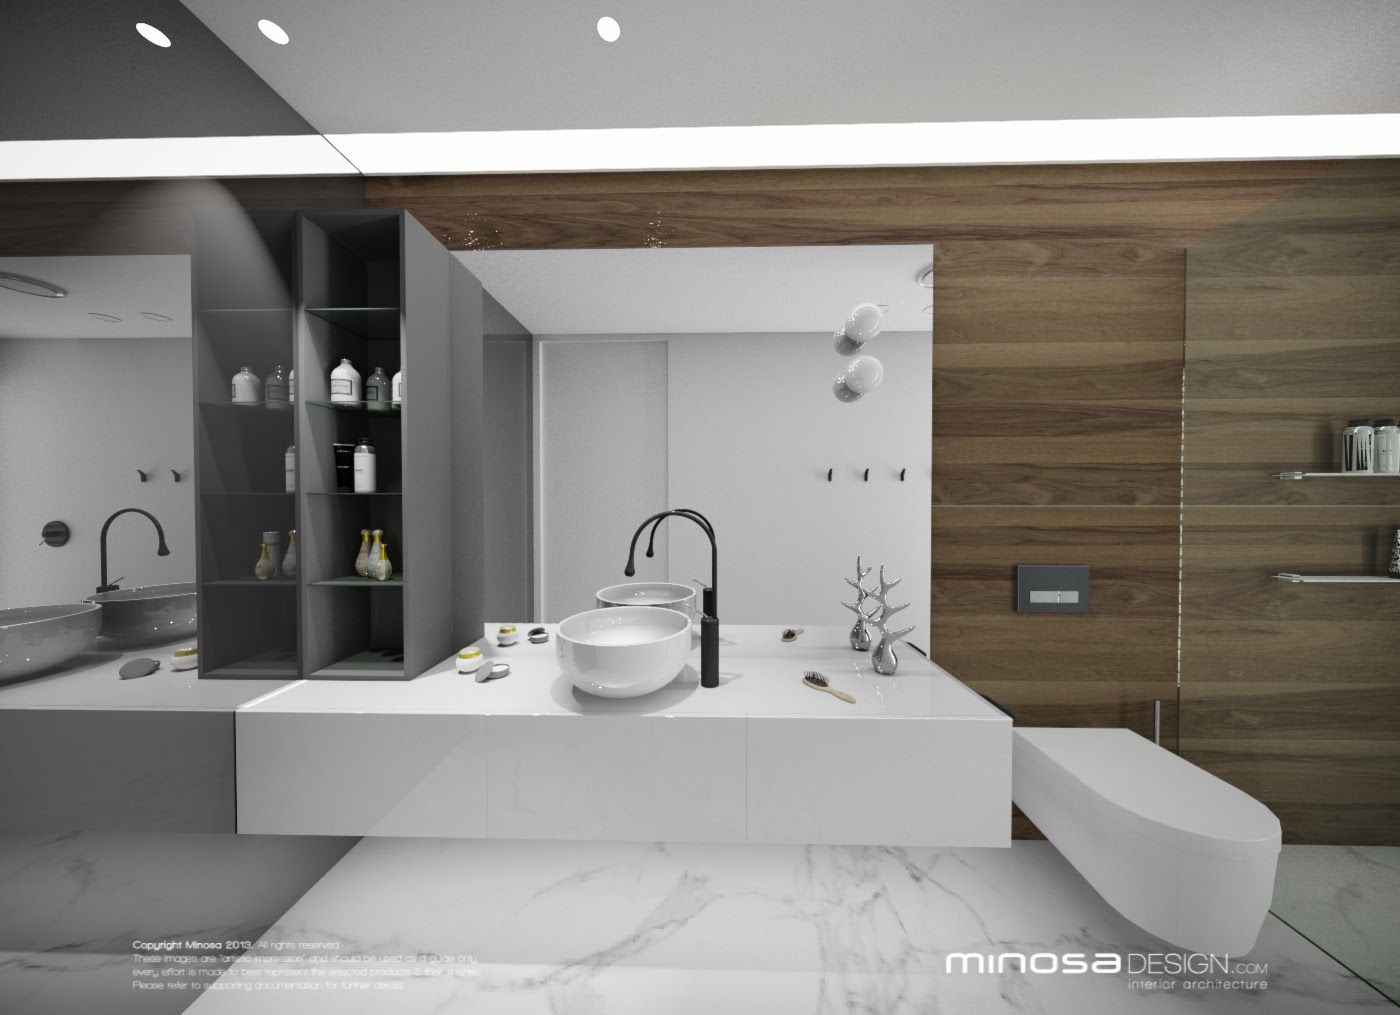 Modern Award Winning Bathrooms 2014 Master Images Inspirations Dievoon